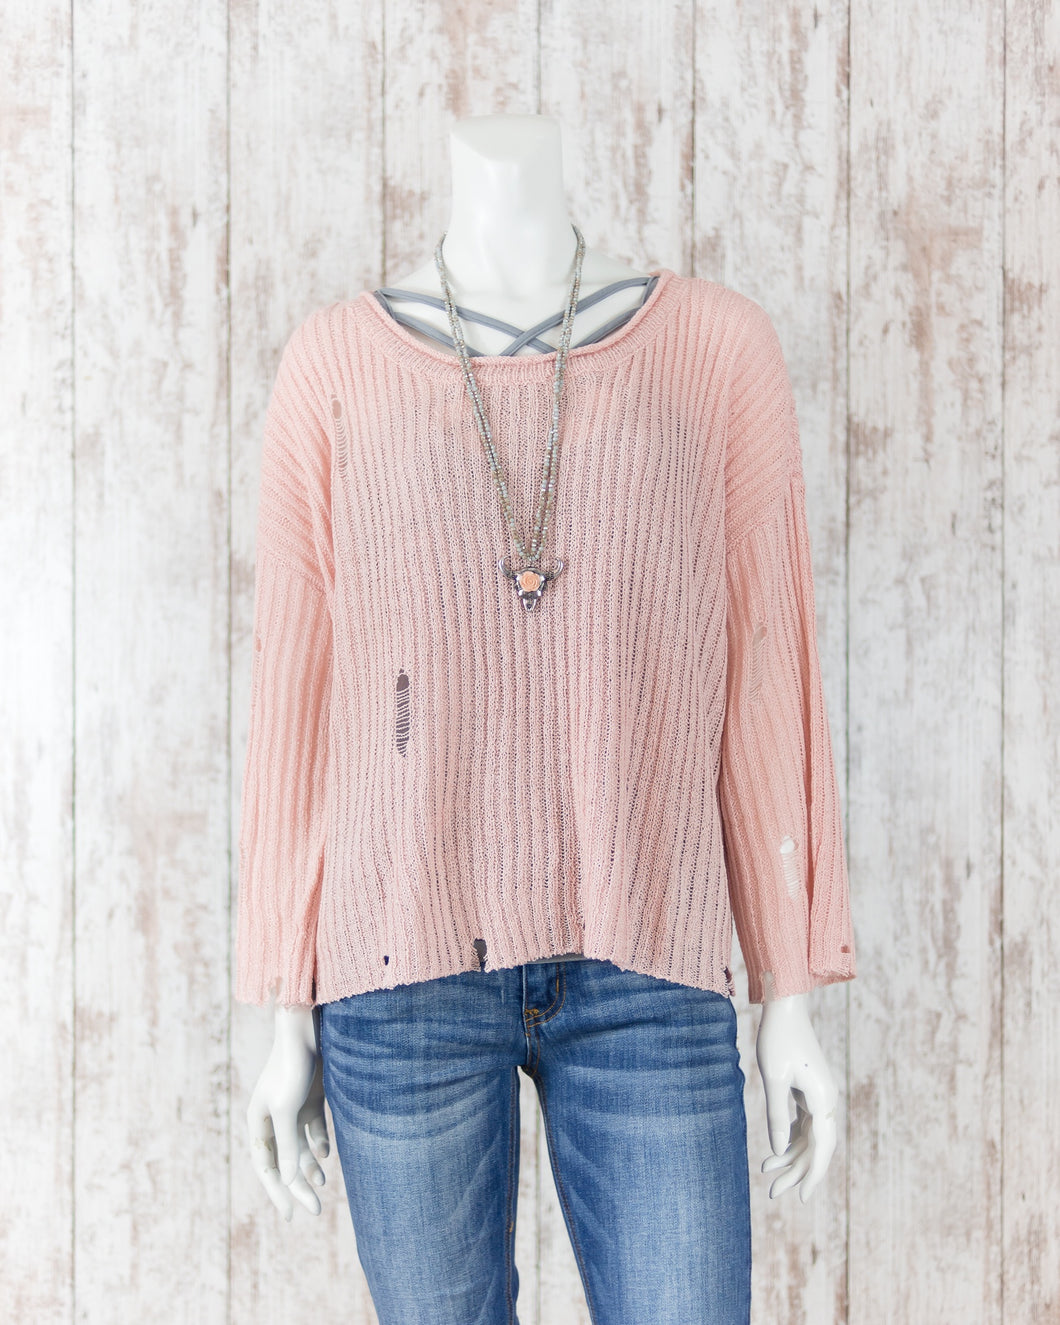 Sheer Knitted Distressed Sweater Top